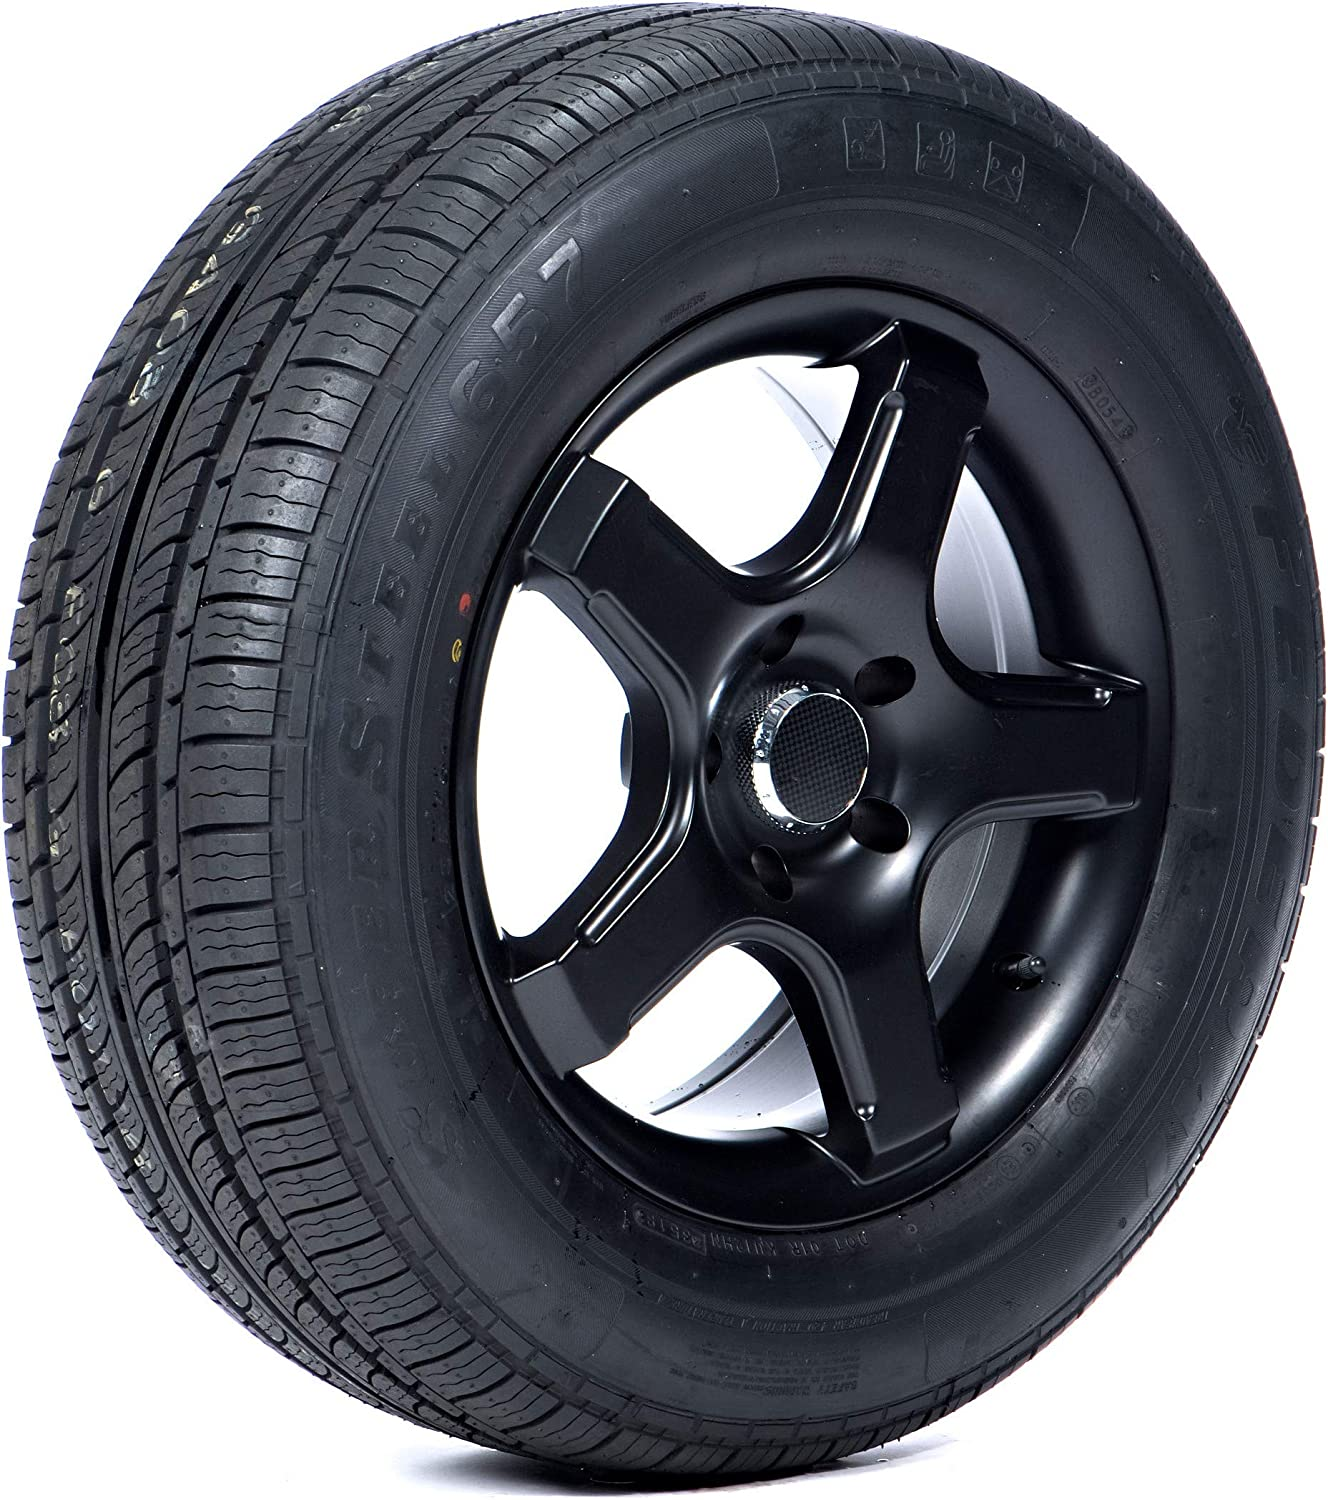 Nexen SB802 All-Season Radial Tire 165//80R15 87T